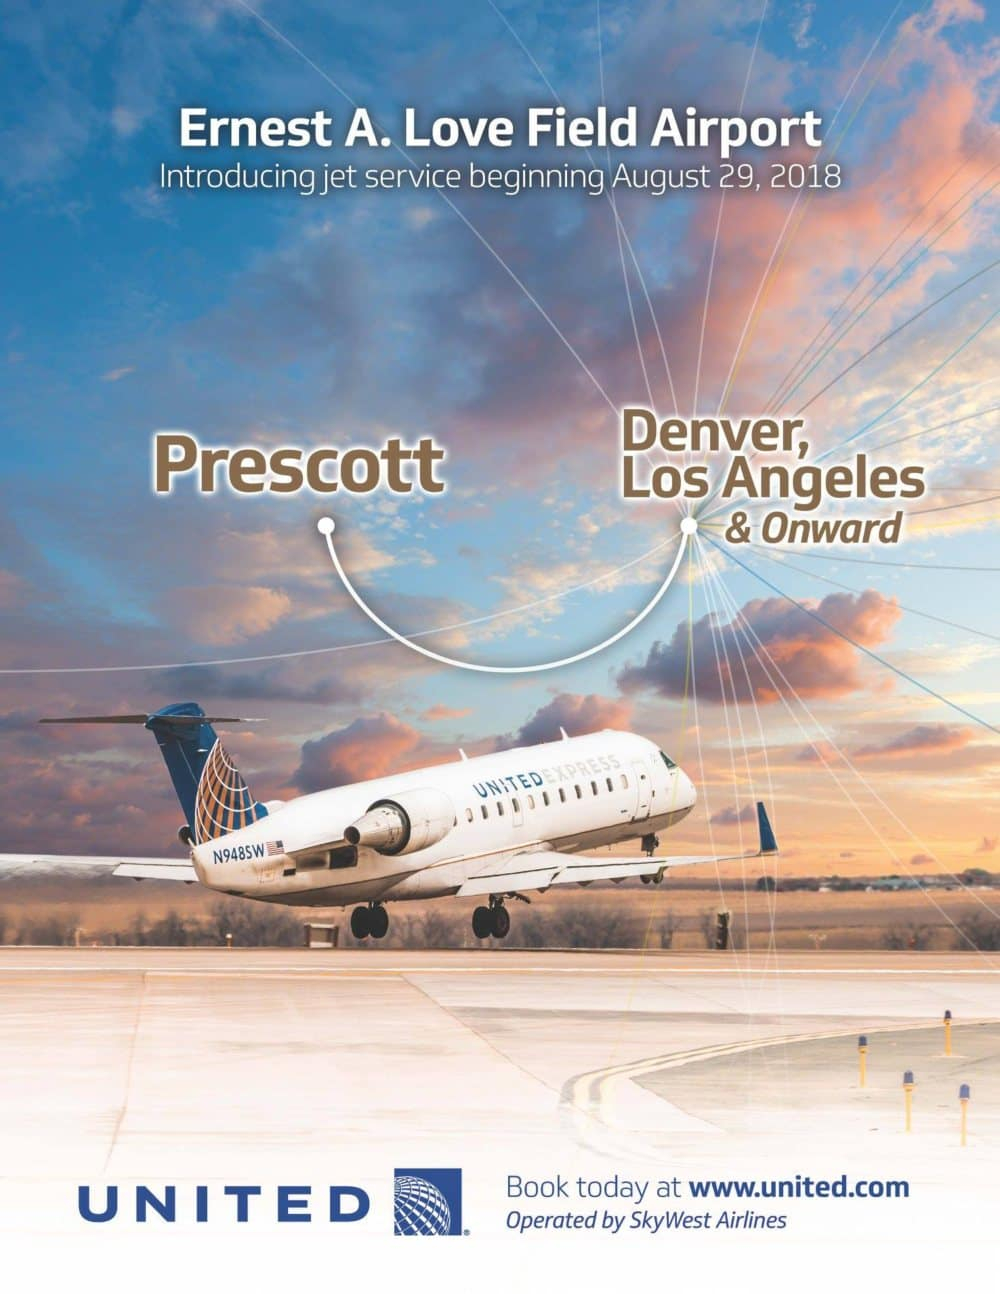 Ernest A Love Field Airport introduces jet service beginning August 29, 2018 connecting Prescott to Denver and Los Angeles with flights provided by United Airlines